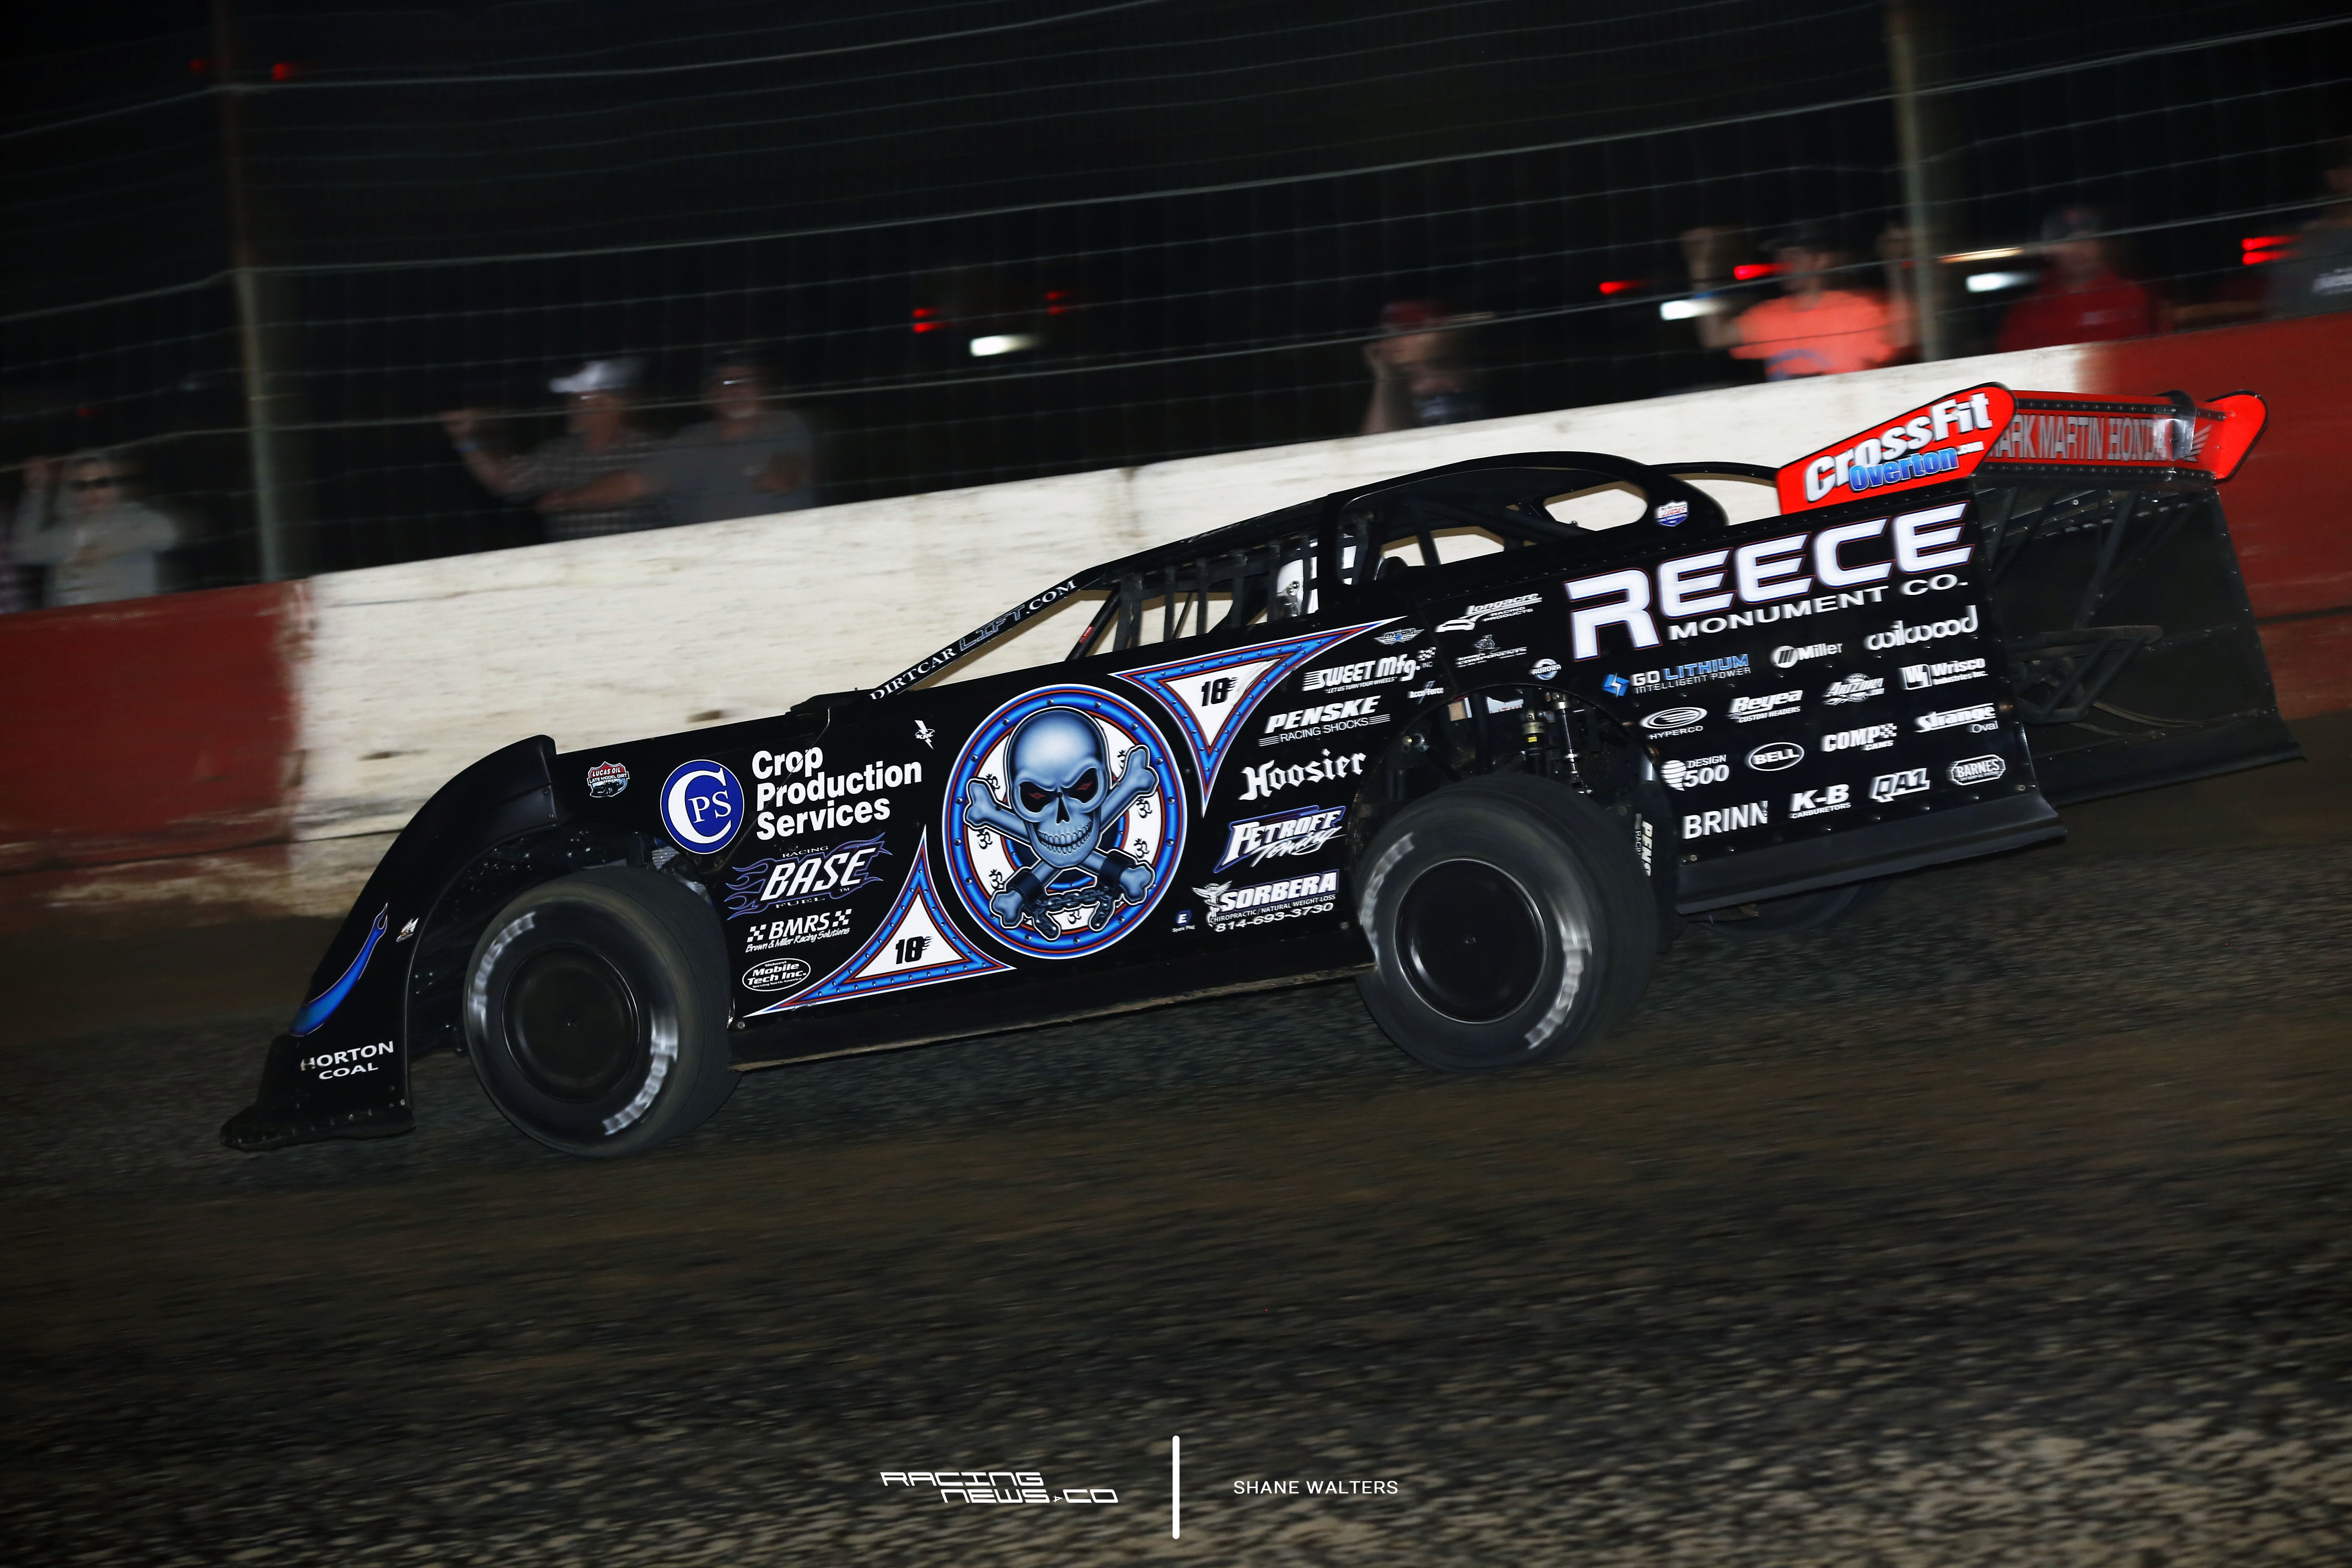 World Racing Group Lawsuit Dropped - Dirt Late Model Dream